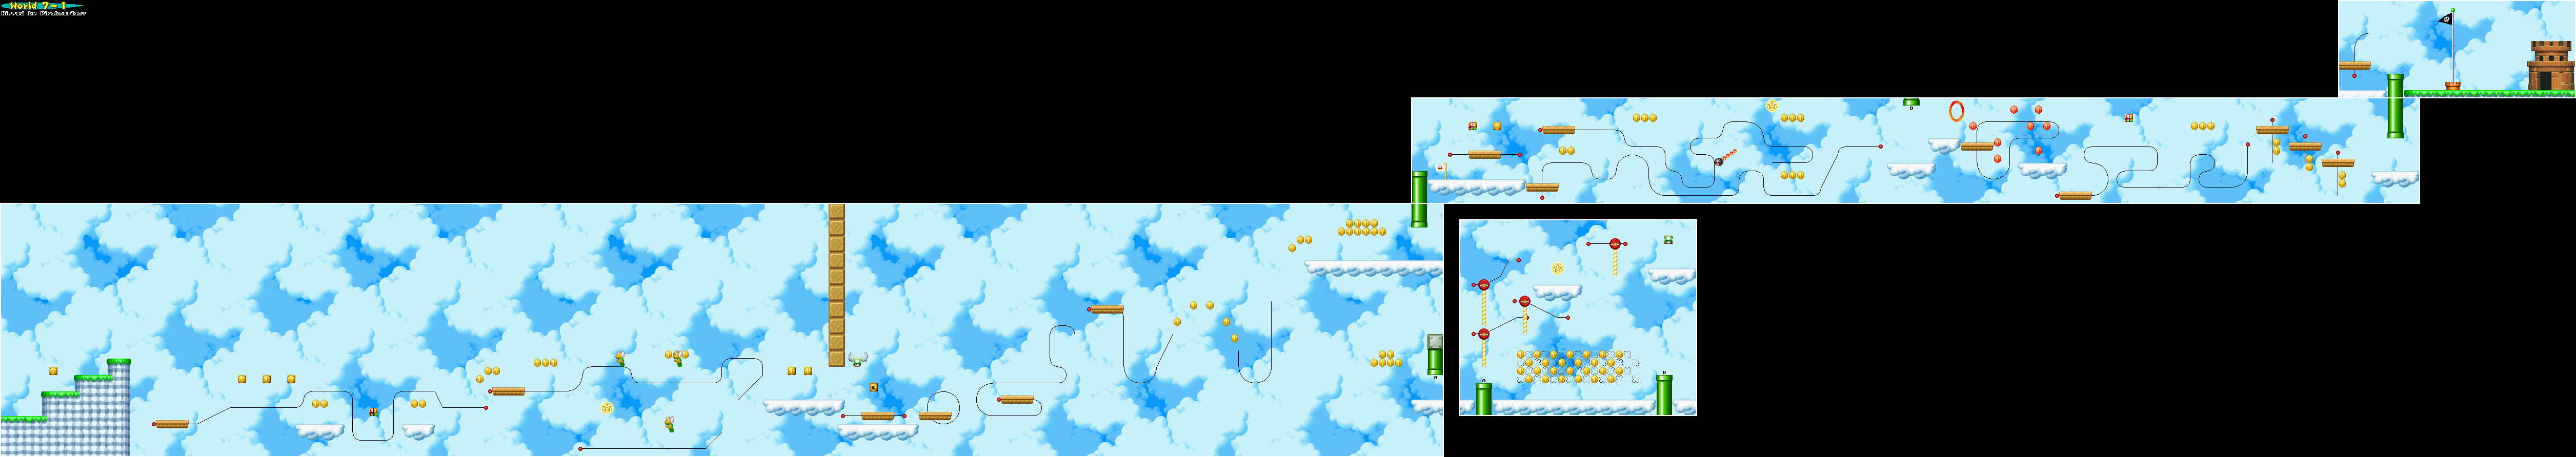 New super mario bros game maps ds world 7 gumiabroncs Images